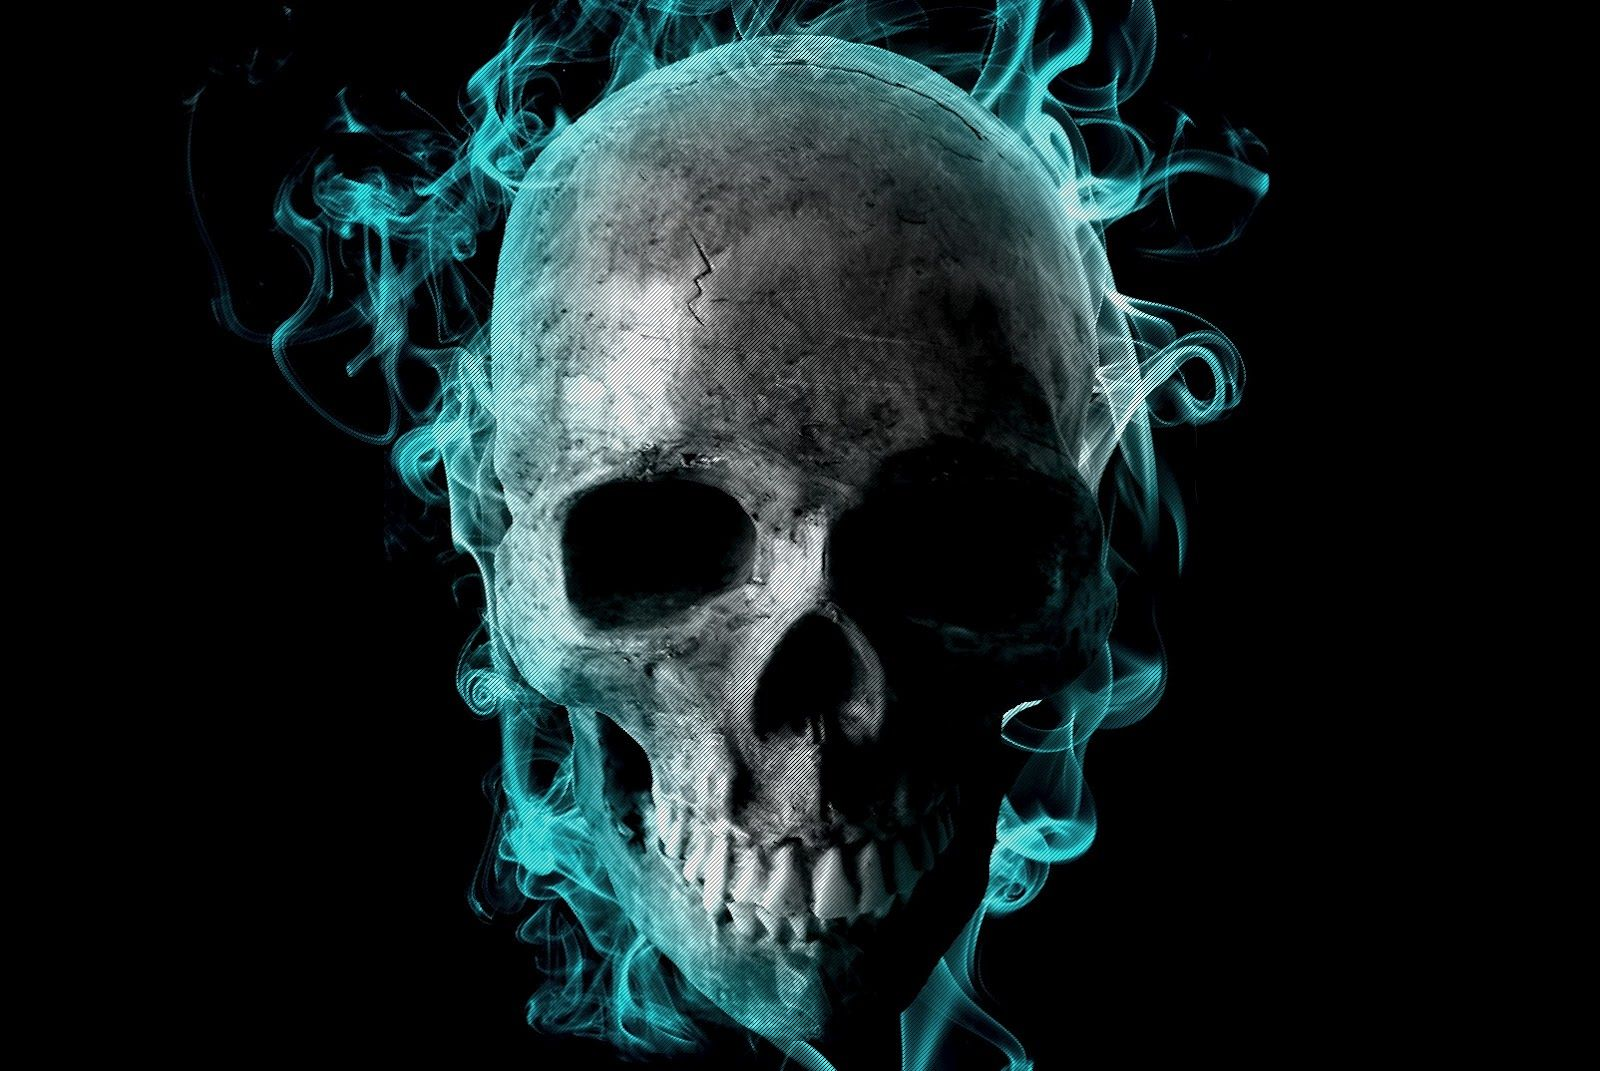 32 incredible flaming skull 3d wallpapers - 7te | more ghost